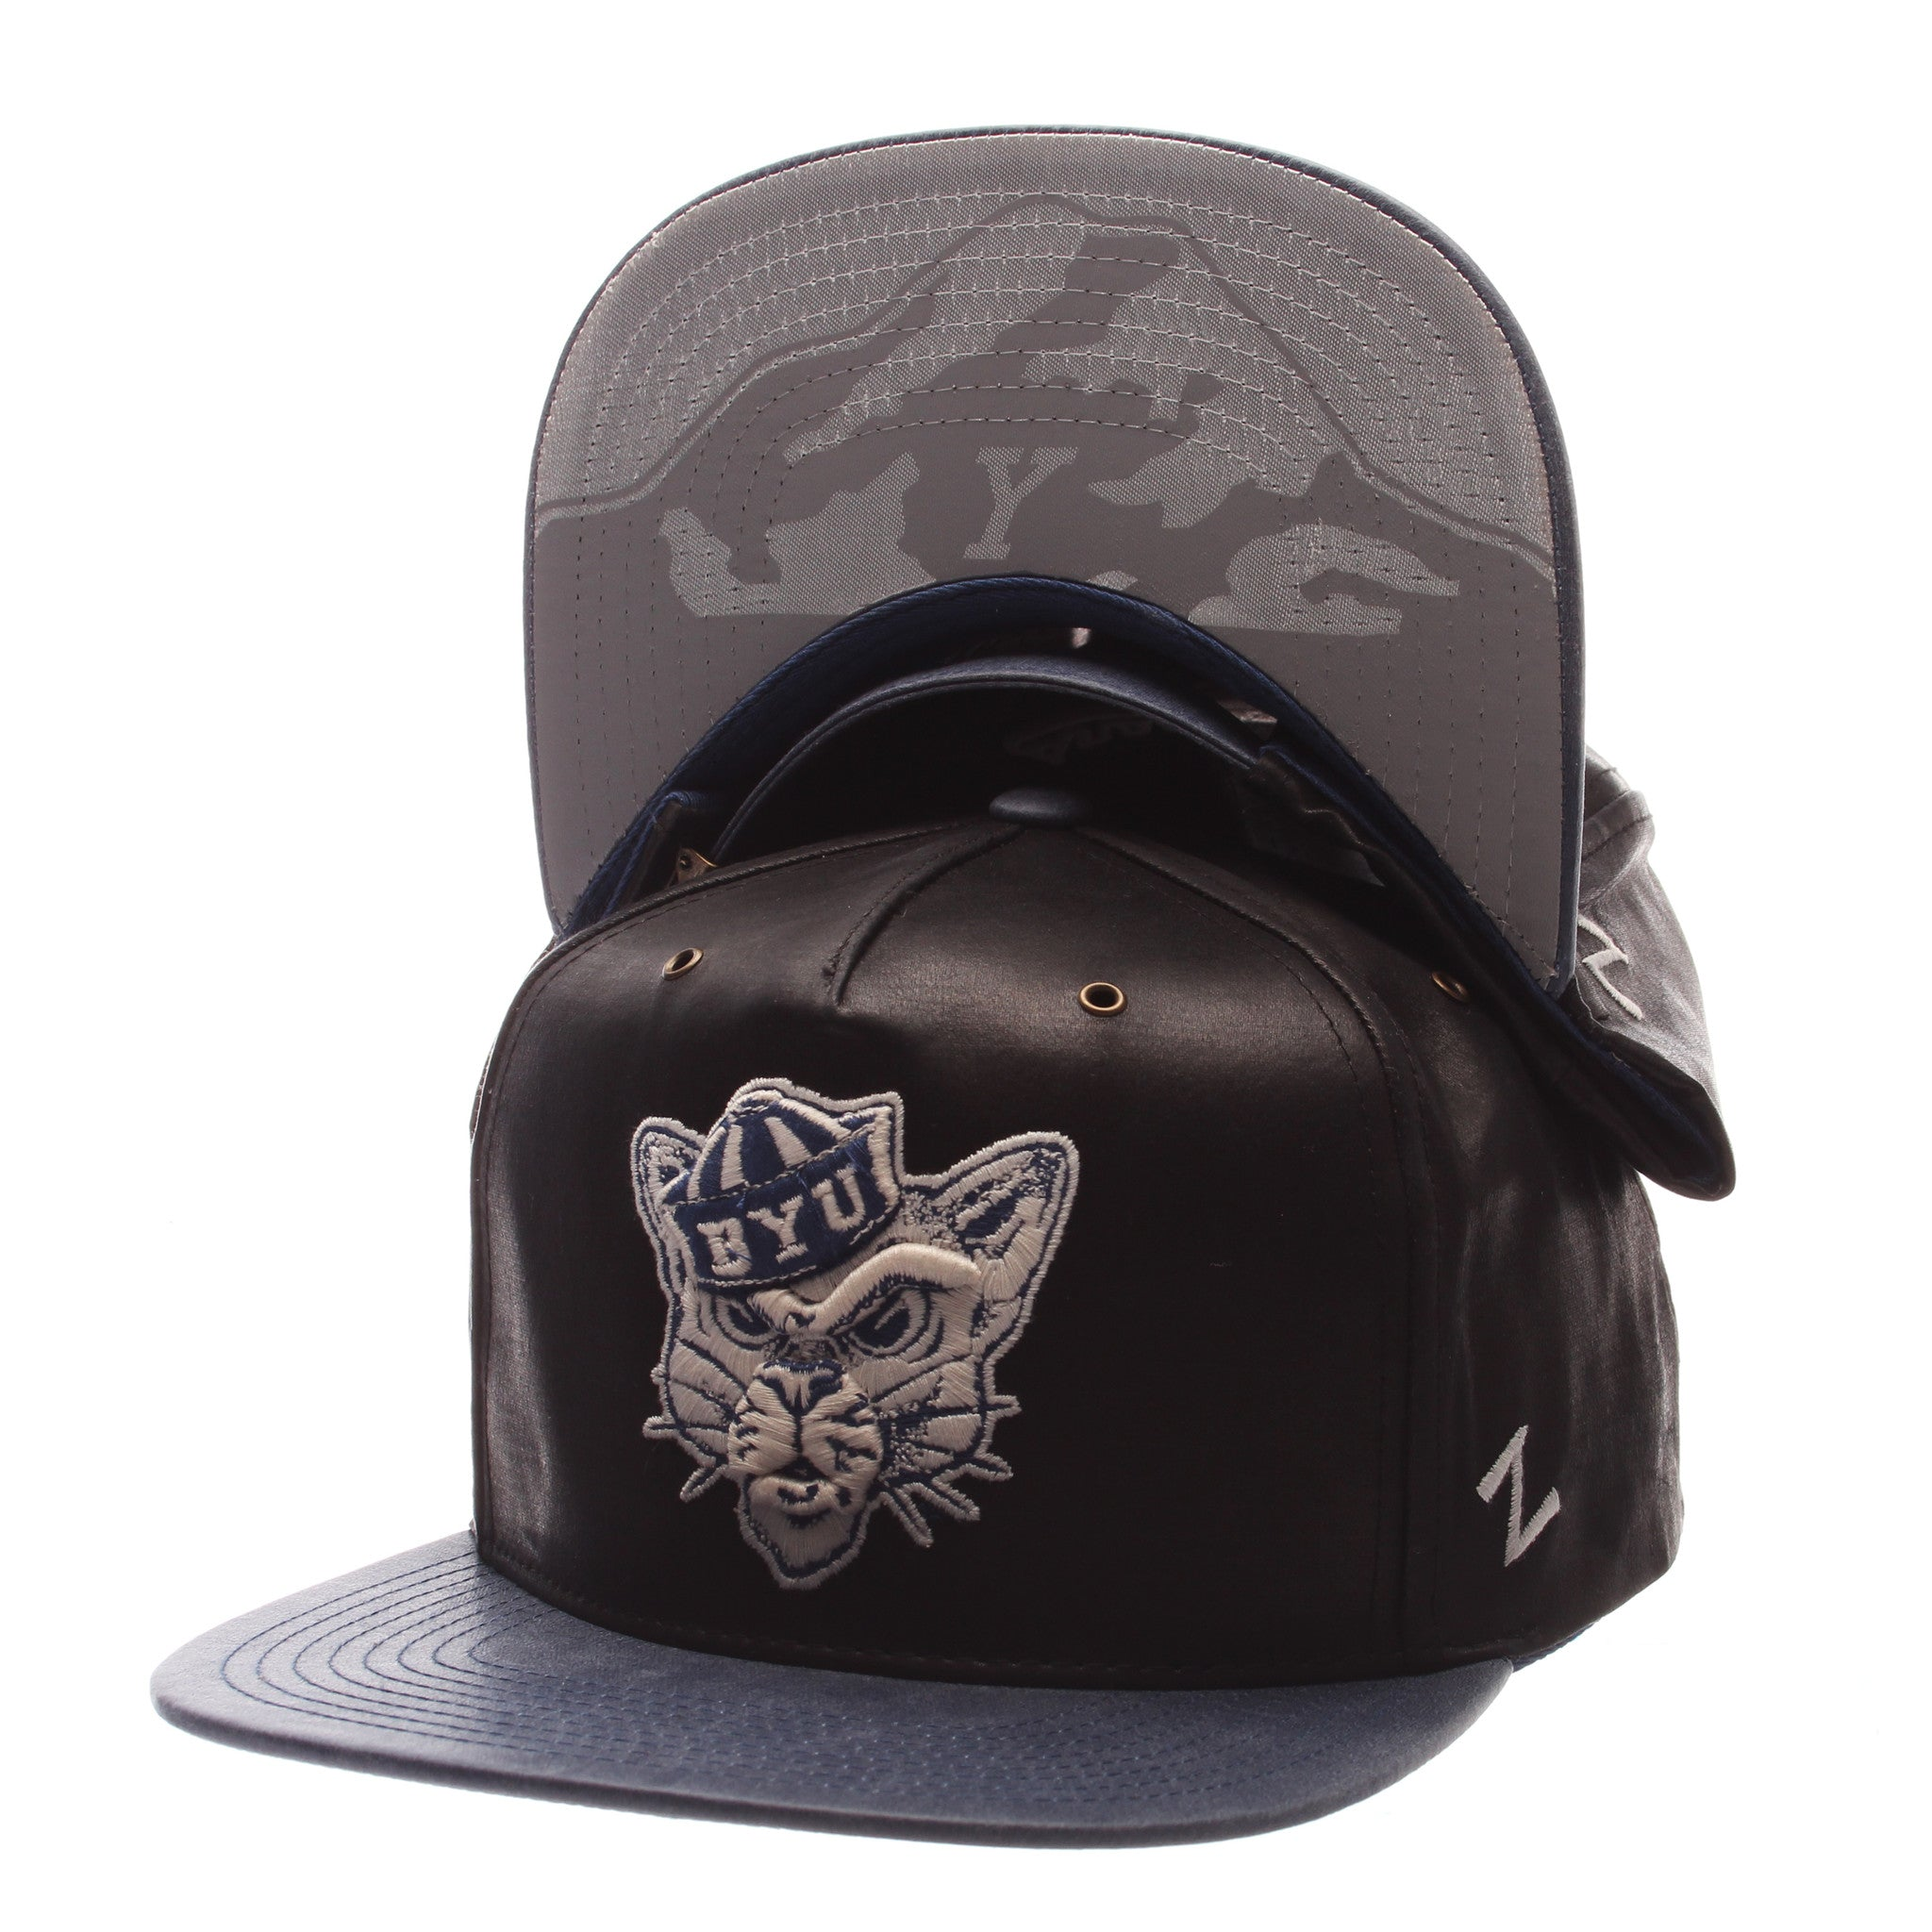 Brigham Young University Tribute 5 Pnl (VAULT COUGAR HEAD) Black Leather Adjustable hats by Zephyr